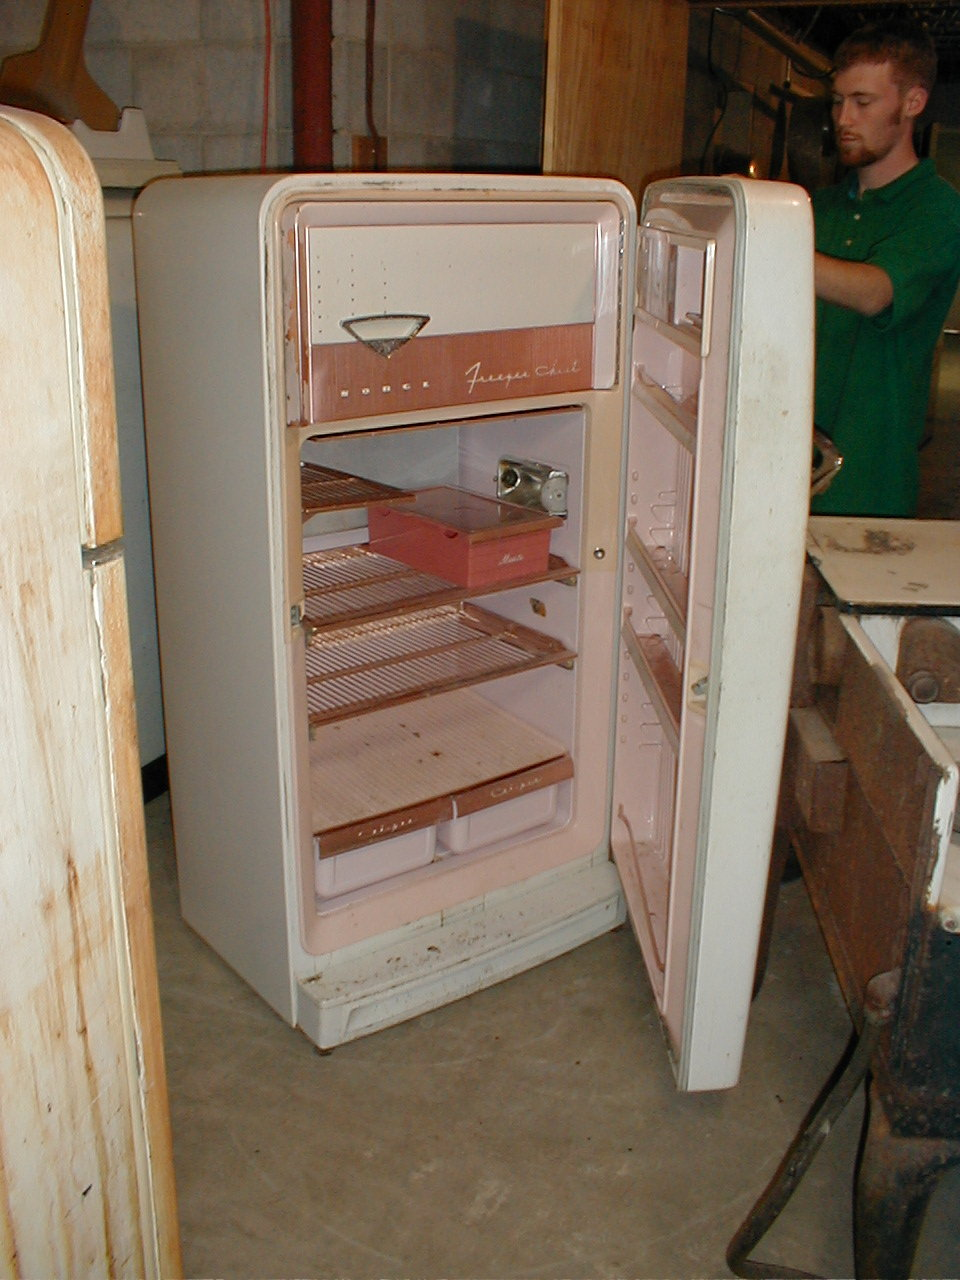 Unrestored Antique Refrigerators